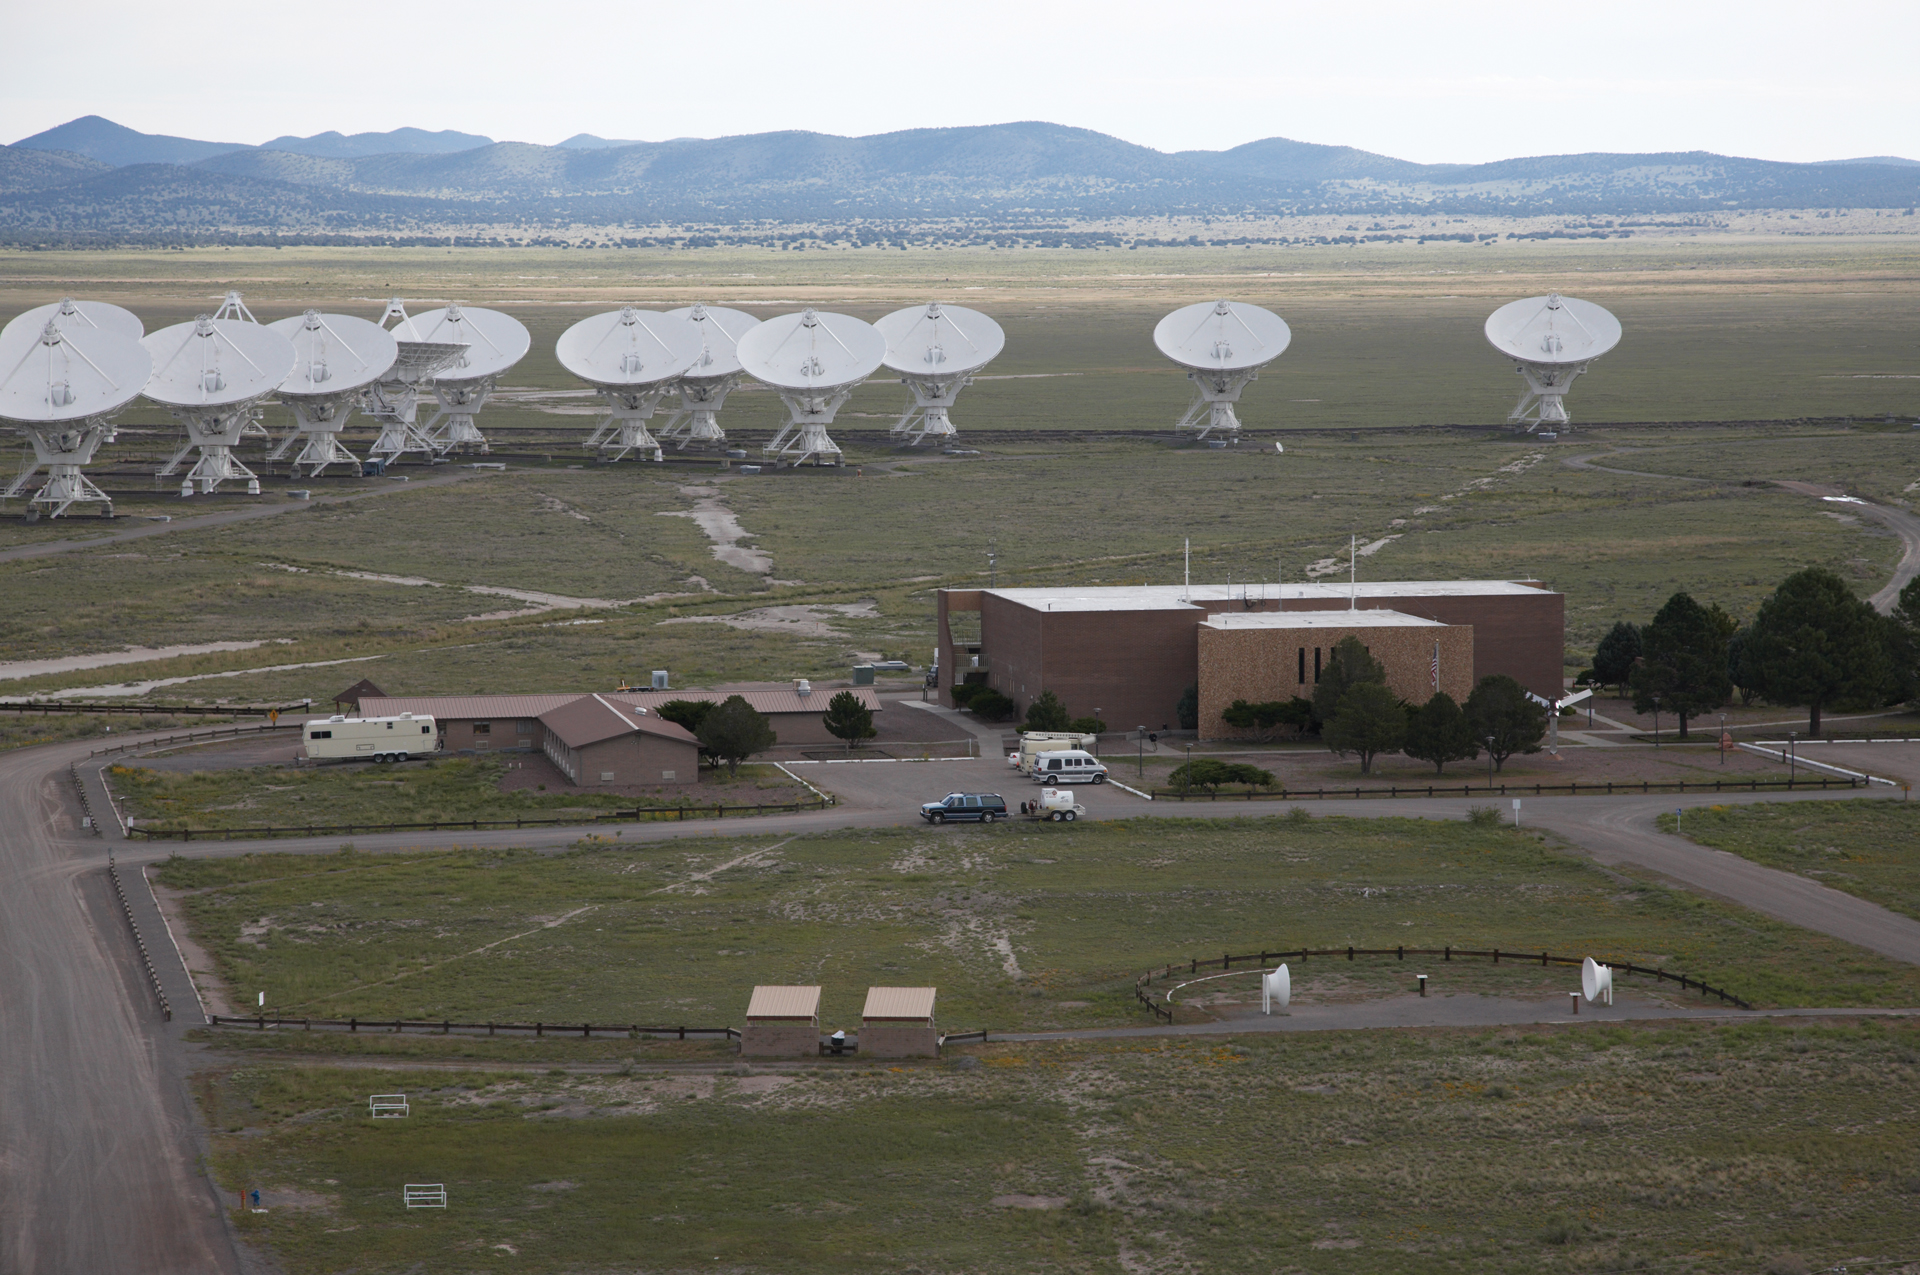 VLA antennas and Control Building